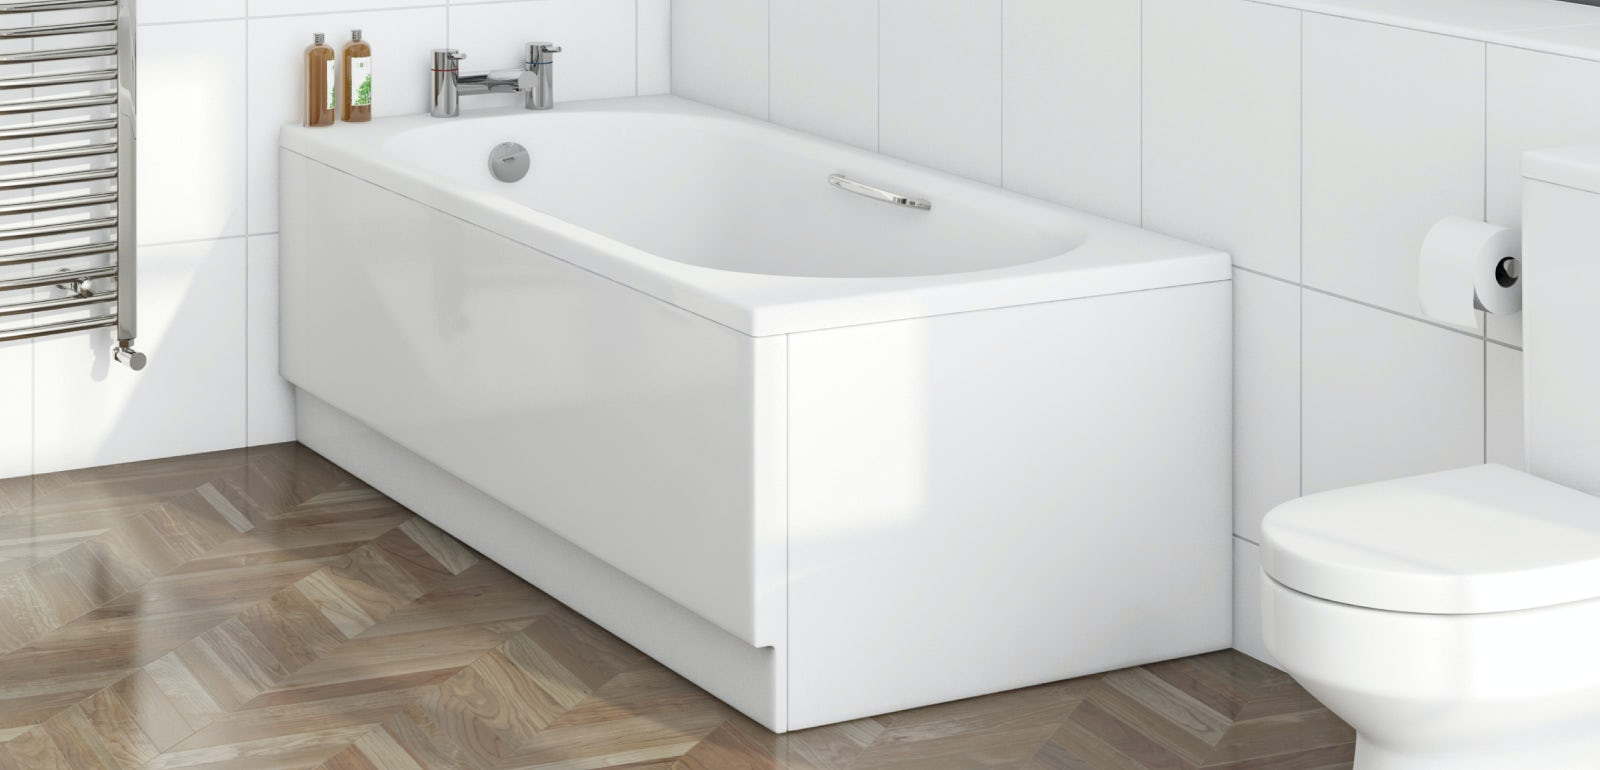 Captivating What Is A Standard Bath Size?